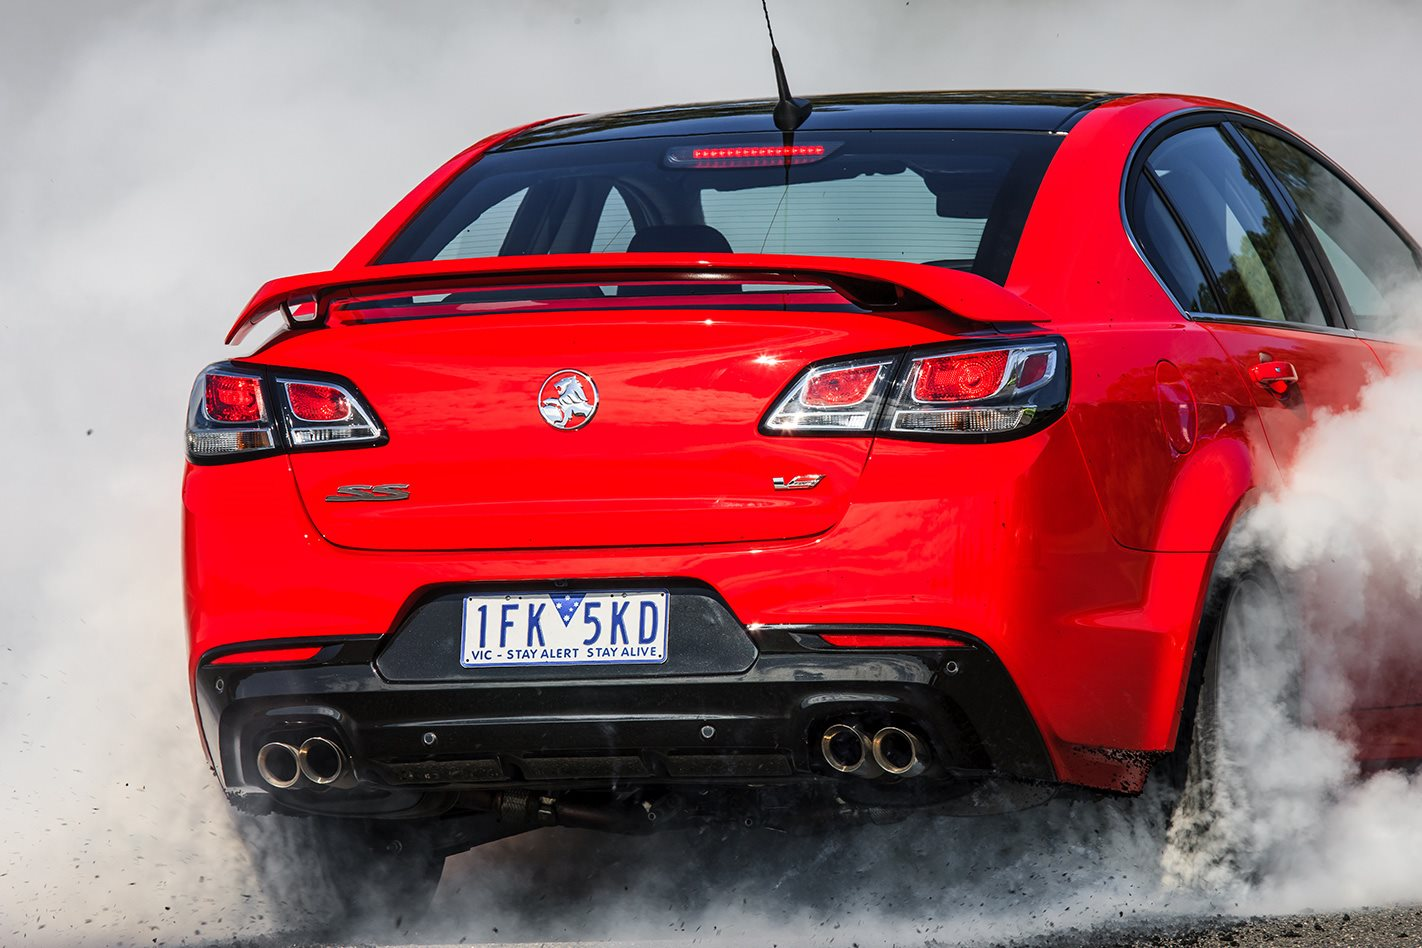 Vf Ii Holden Commodore Ss Will Be Last Affordable V8 Gm